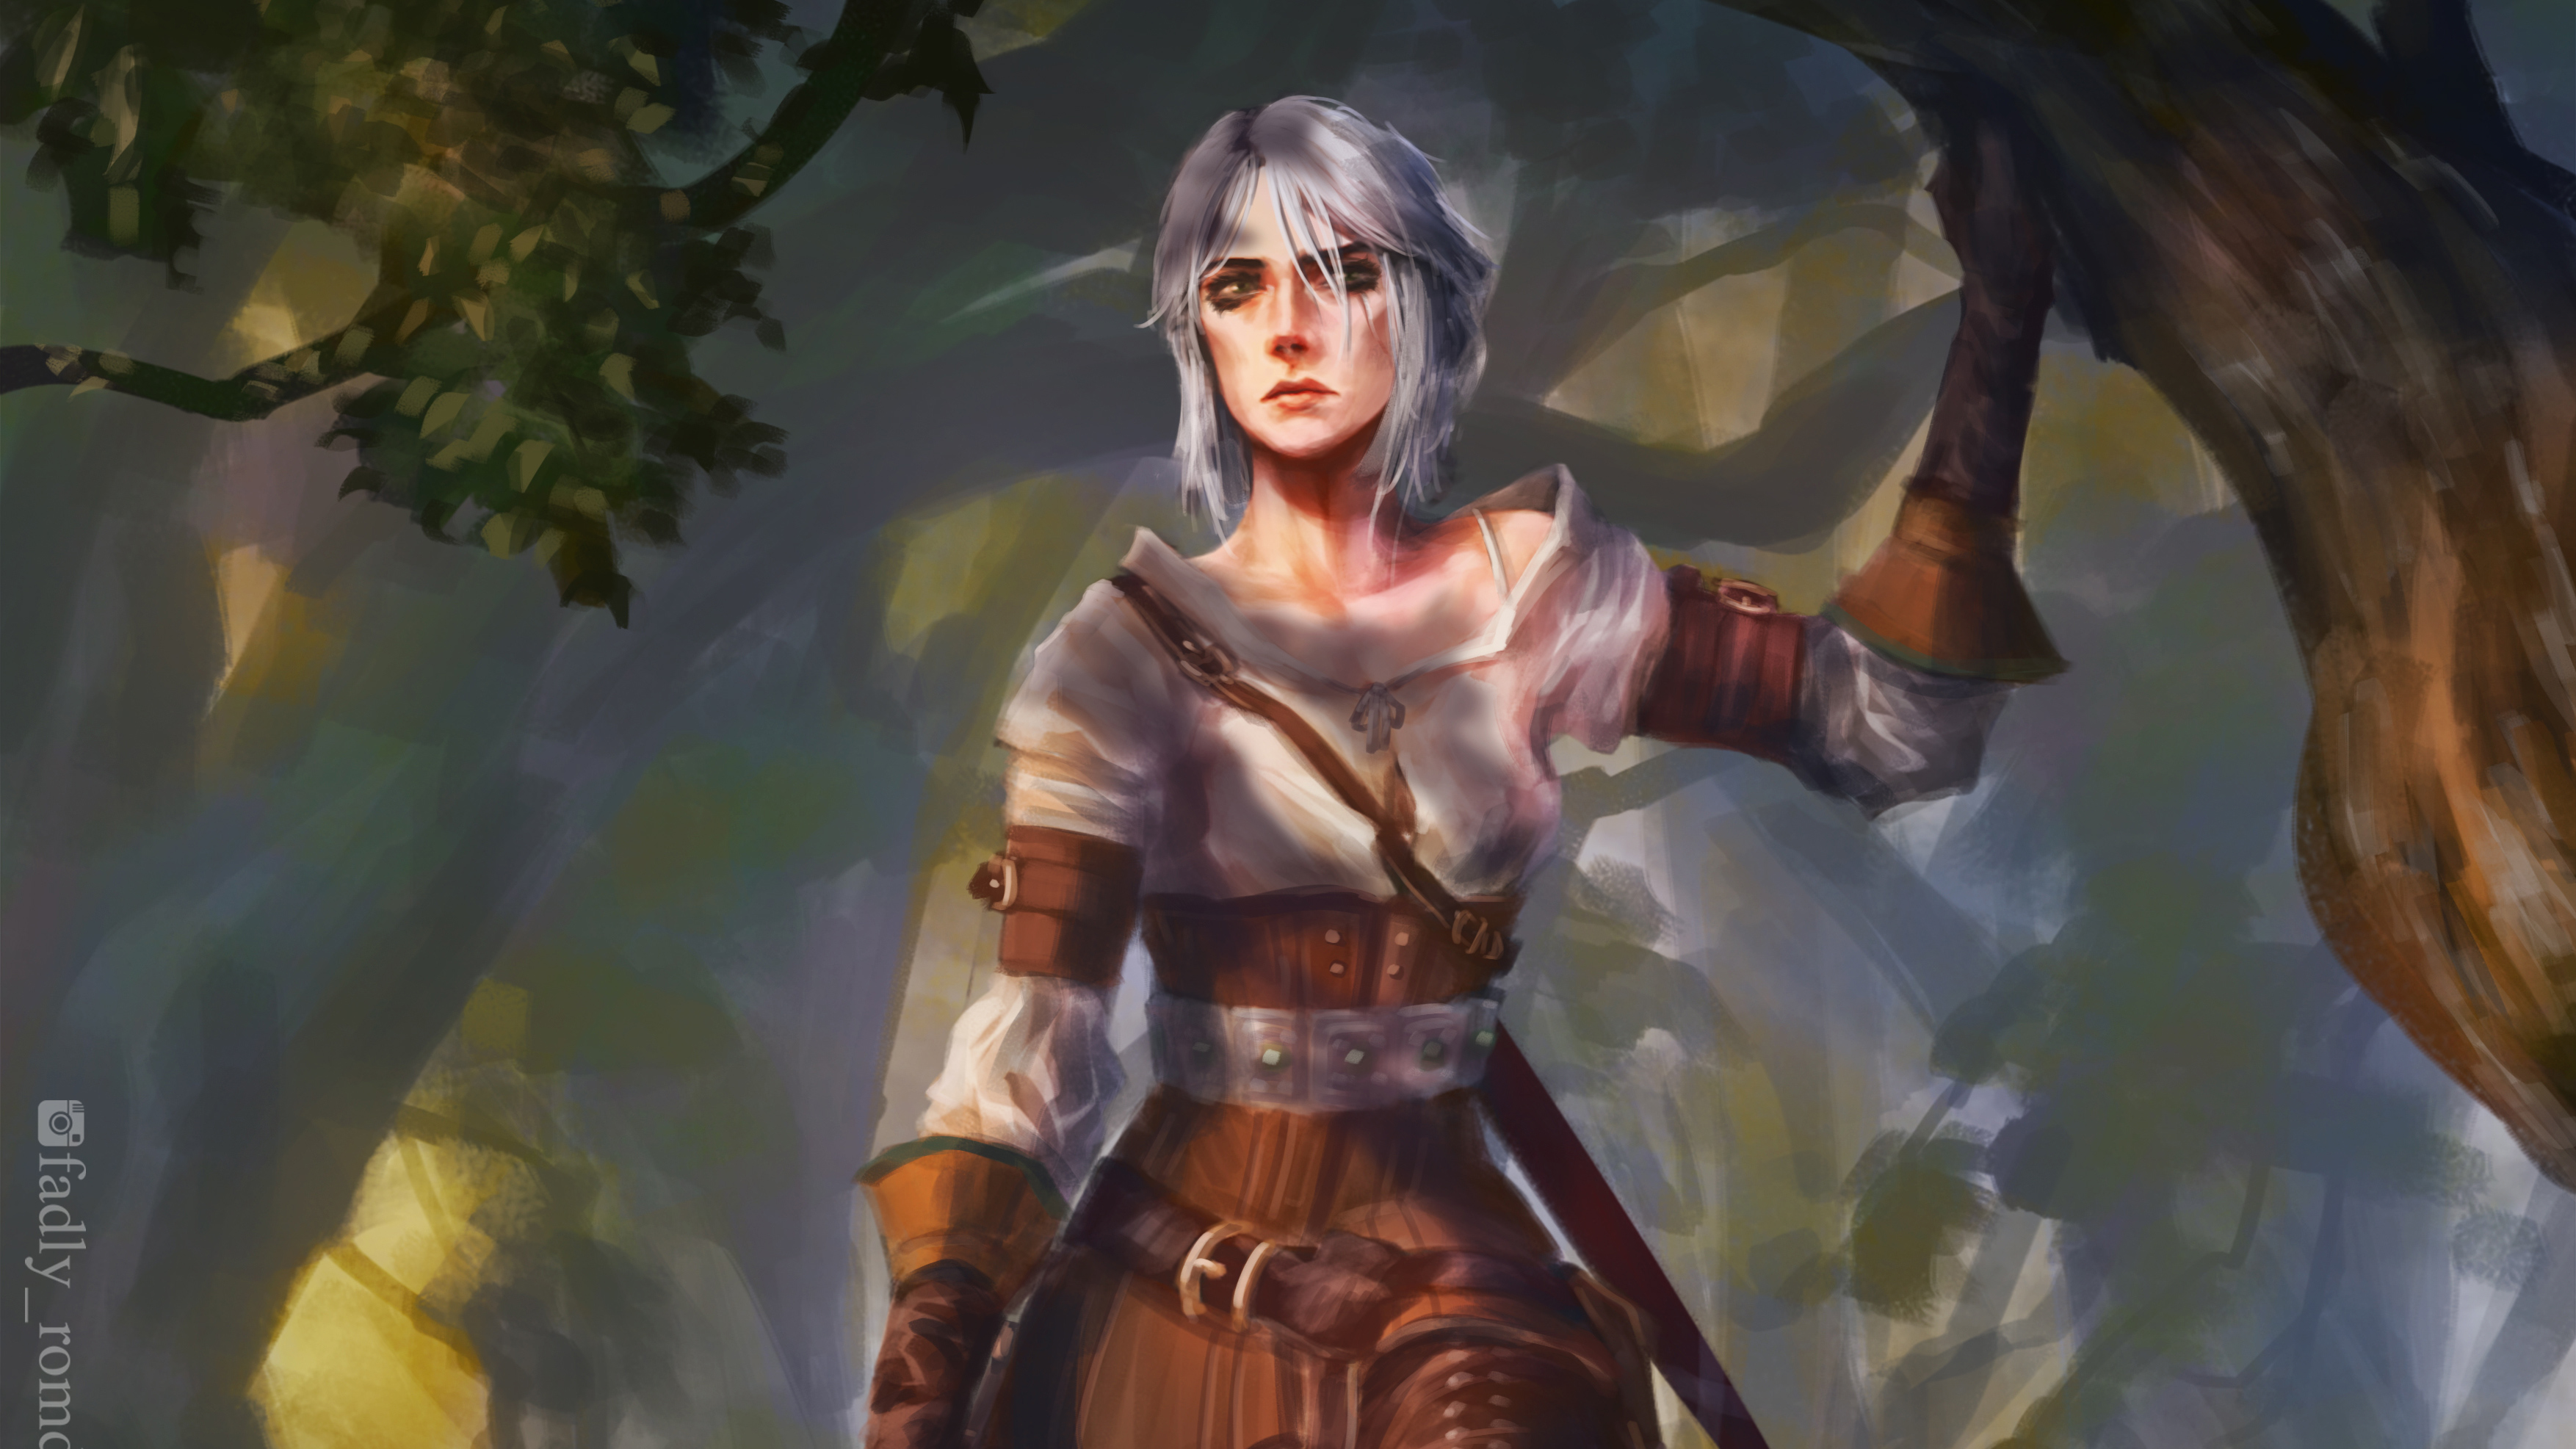 Ciri The Witcher 3 4k Hd Games 4k Wallpapers Images Backgrounds Photos And Pictures